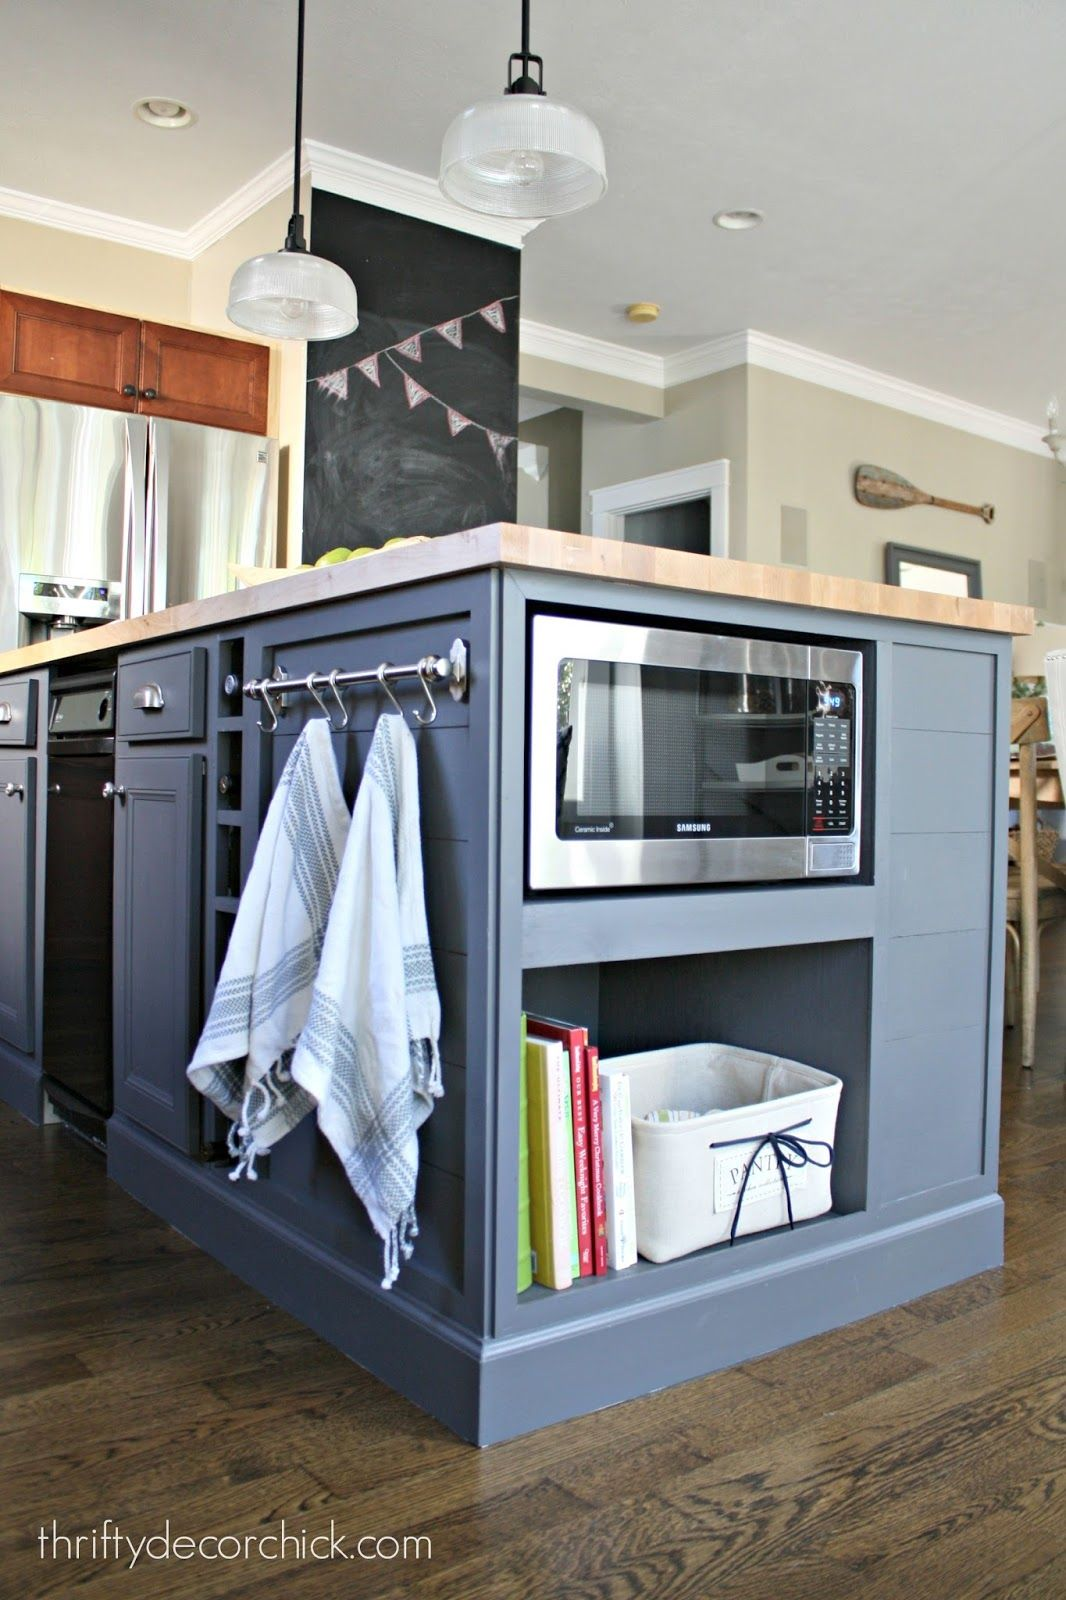 Tv In Kitchen Tv In Kitchen Between Full Size Refrigerator And Full Size Freezer